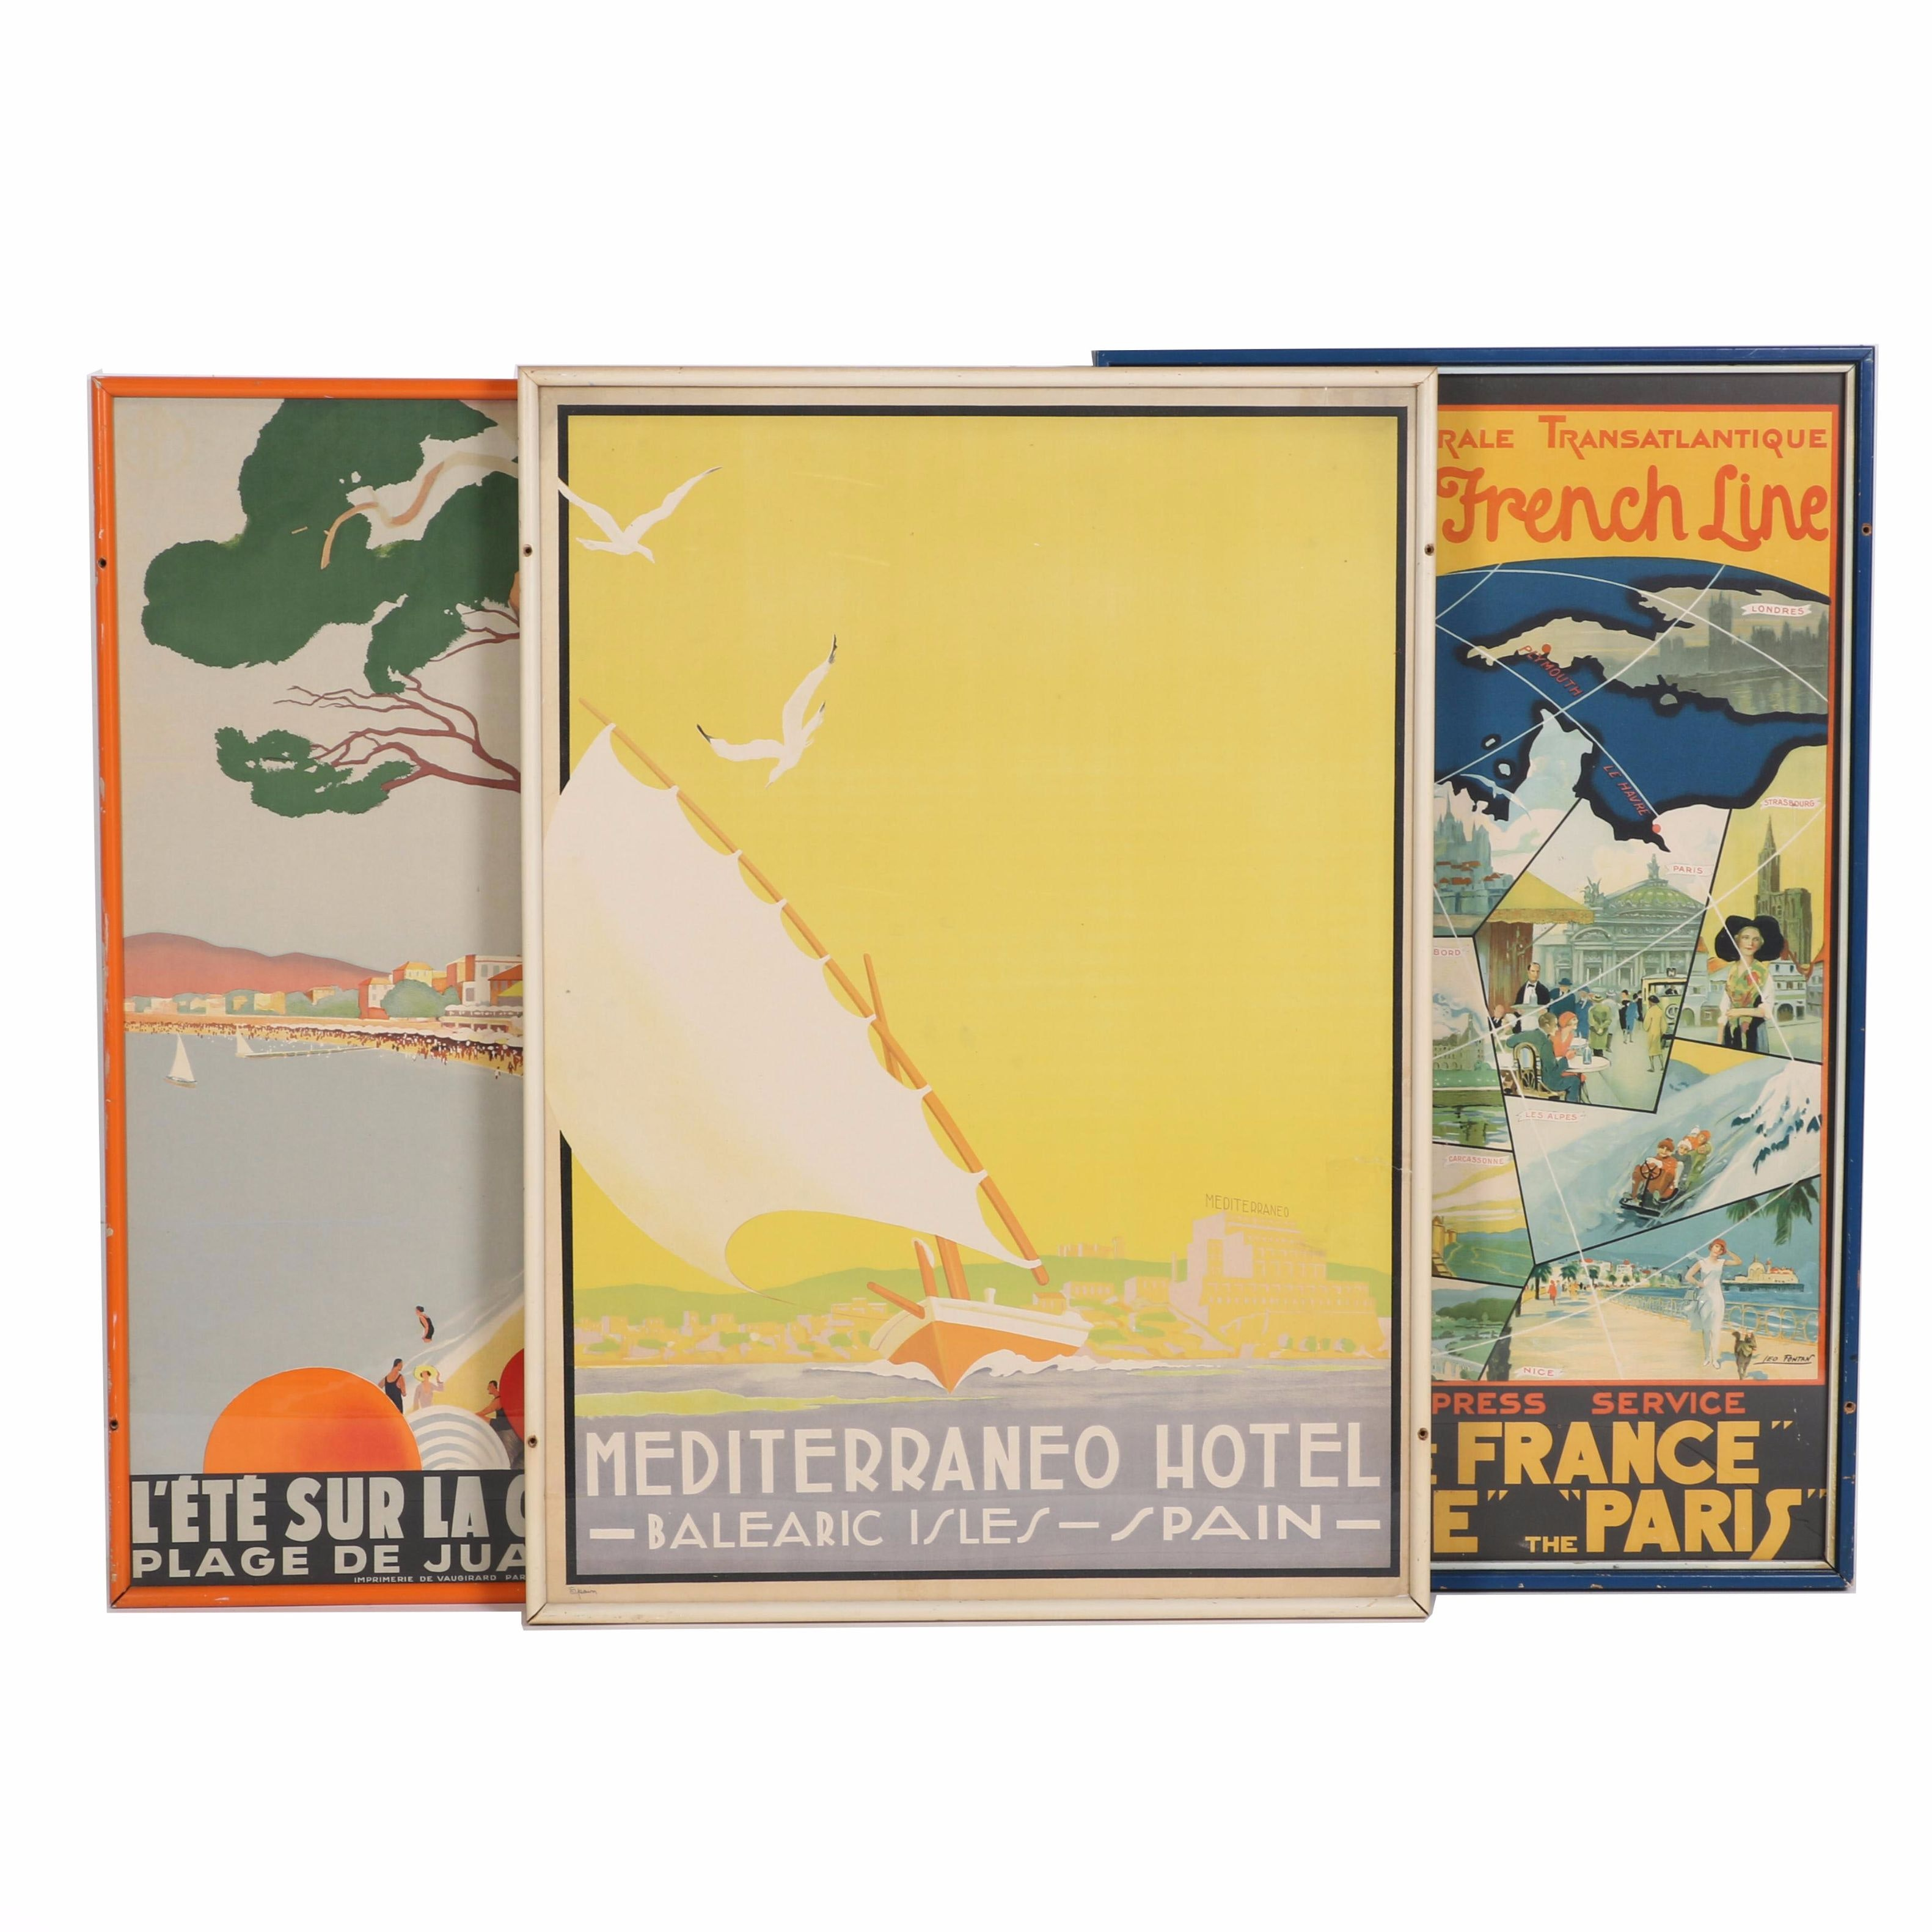 Lithographs of Art Deco Travel Advertisements